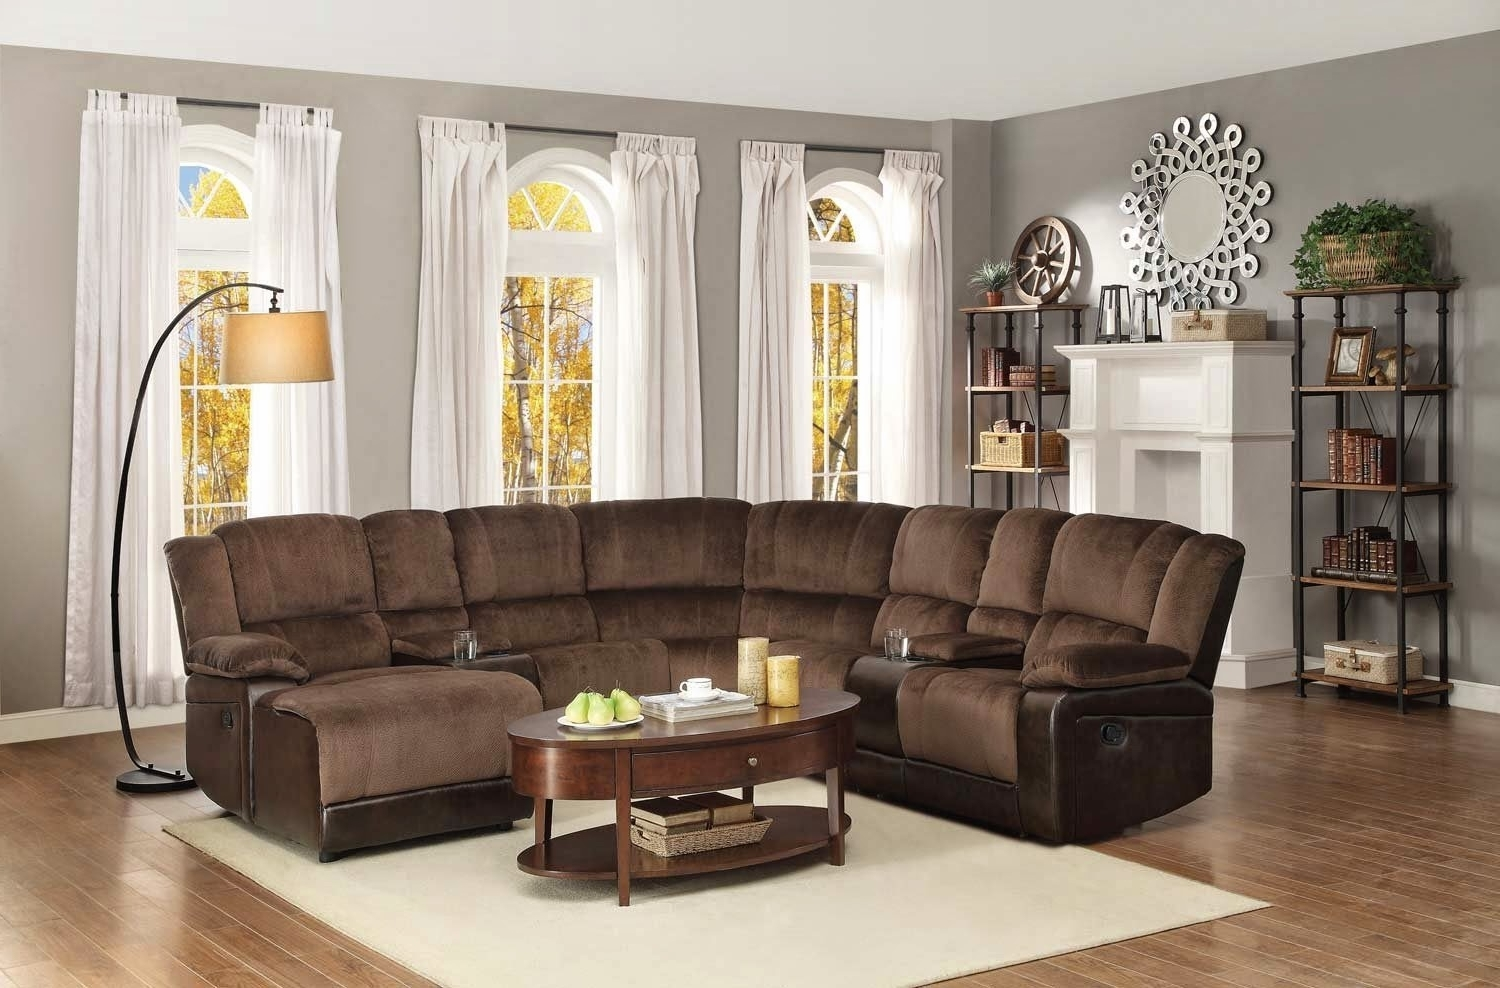 Recent Curved Sectional Sofas With Recliner In Leather Sectional Sofa With Power Recliner Sectionals Sofas Softy (View 7 of 15)